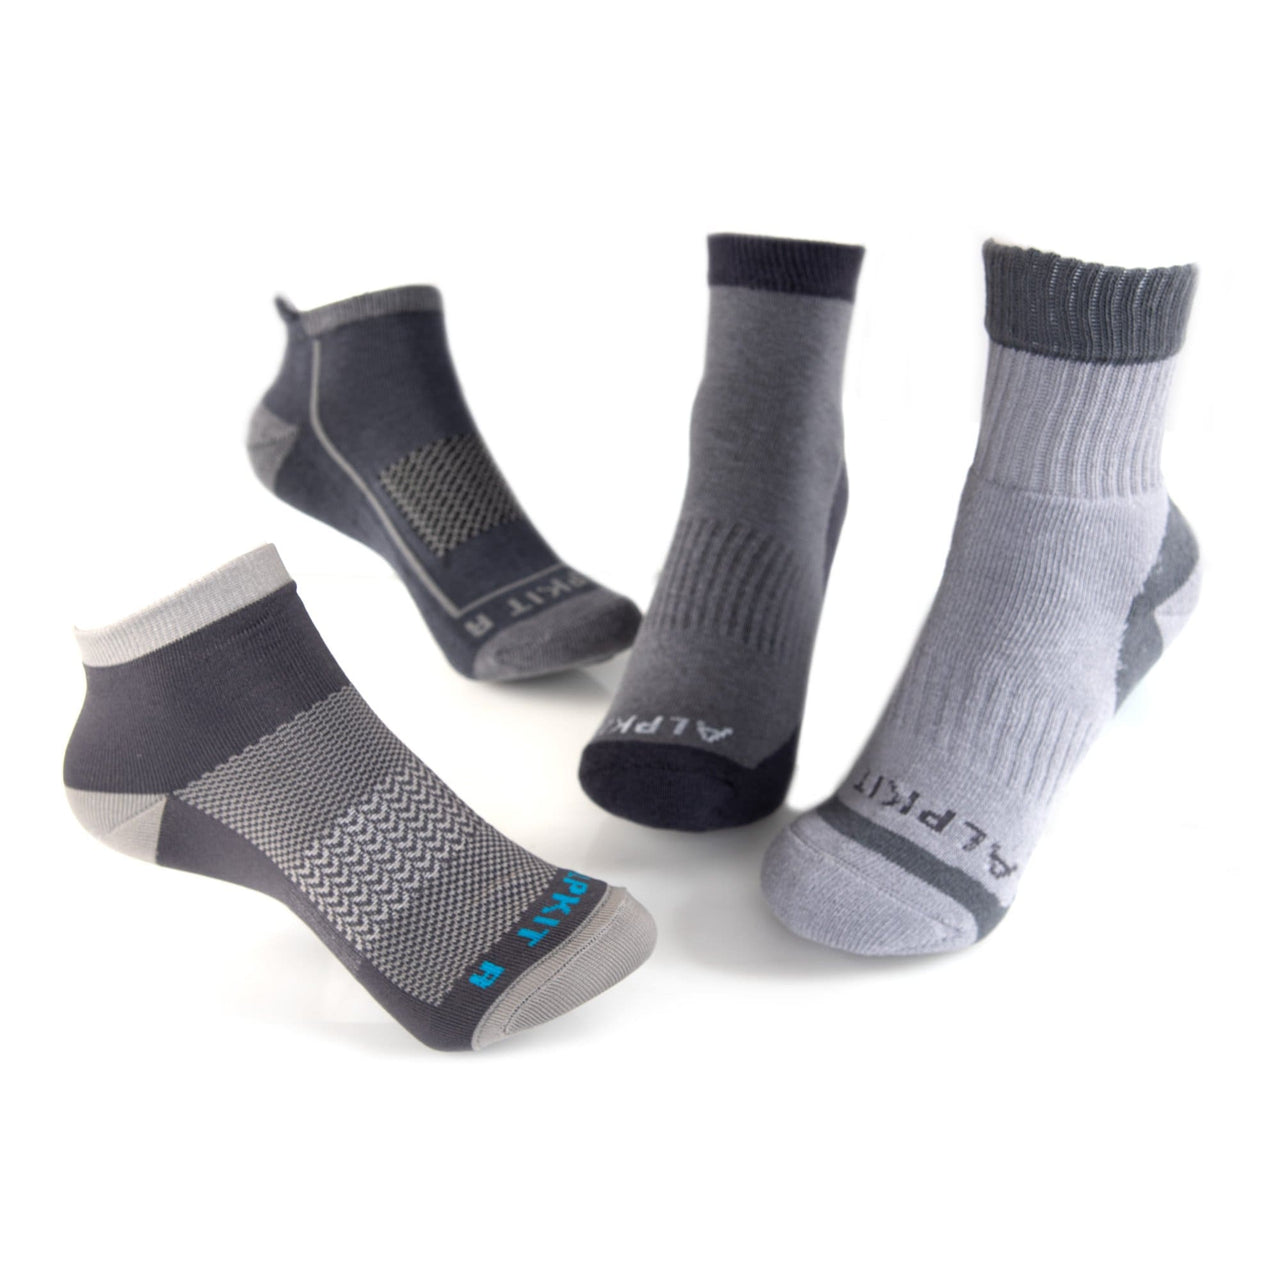 AK Multi Activity Sock Range Pack